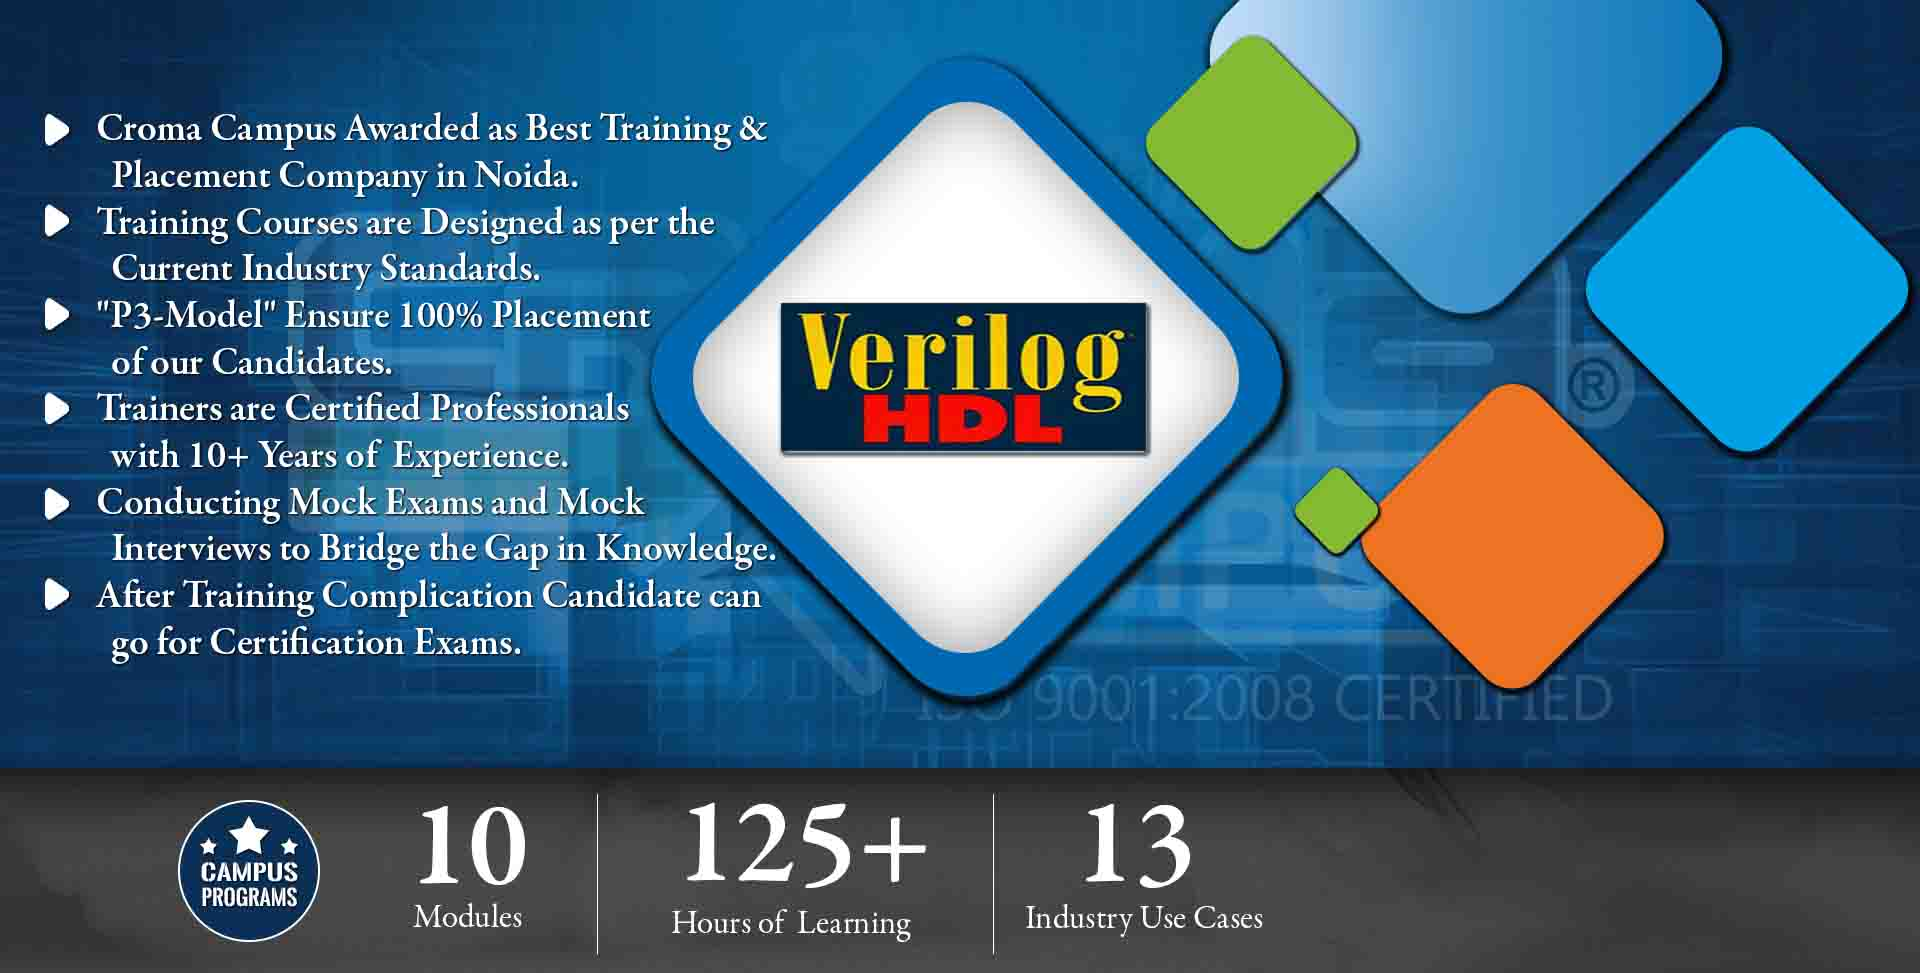 Verilog HDL Training in Delhi NCR- Croma Campus